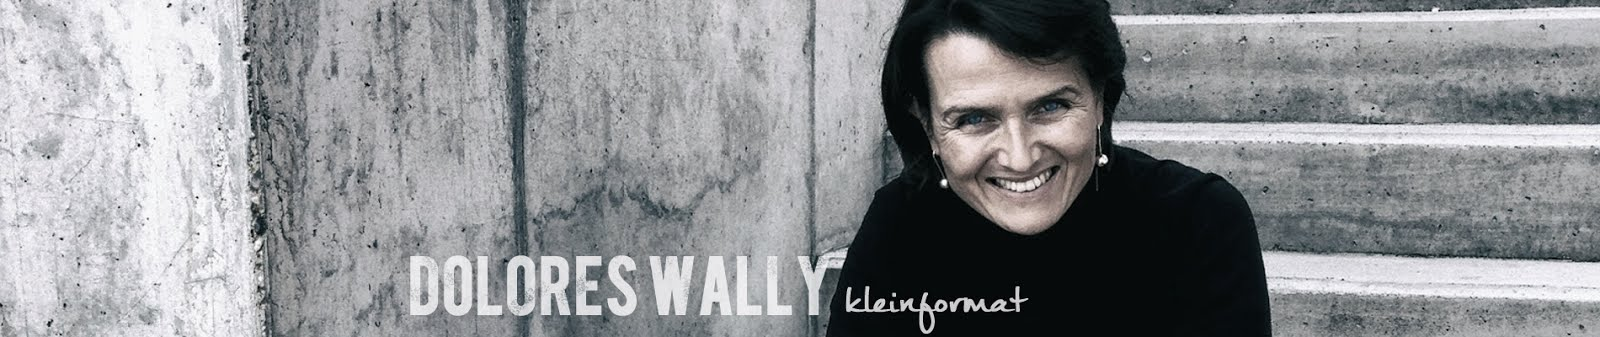 kleinFORMAT Dolores Wally